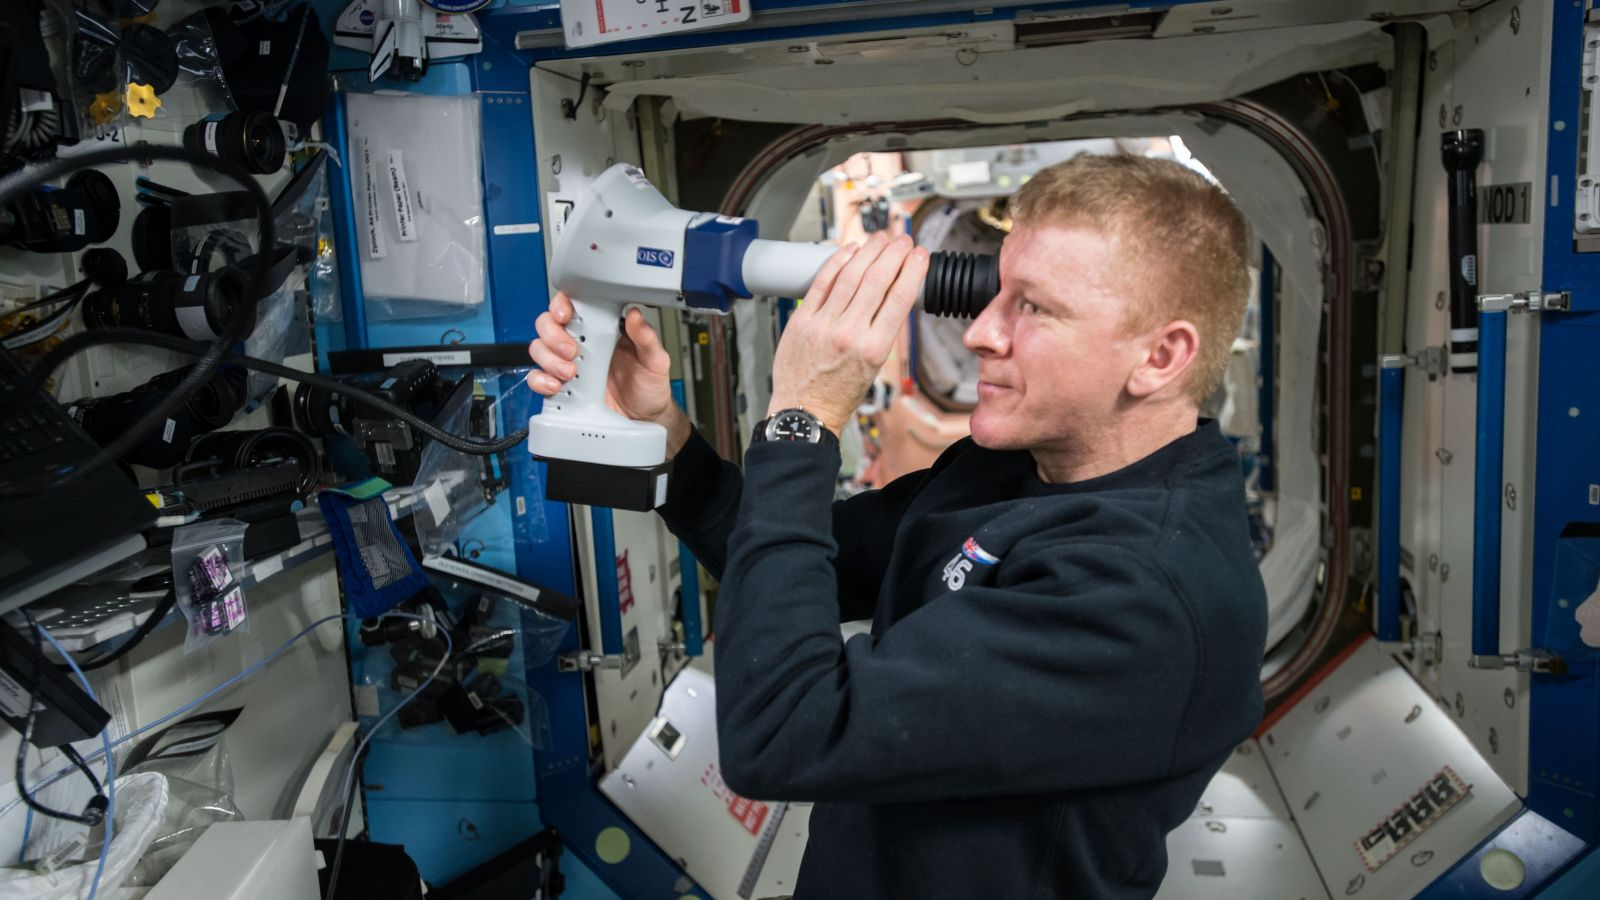 European Space Agency astronaut Tim Peake performs an exam on his eye as part of the ocular health study. This research will help in understanding why some astronauts and cosmonauts have vision problems after long-duration spaceflight. Photo Credit: NASA